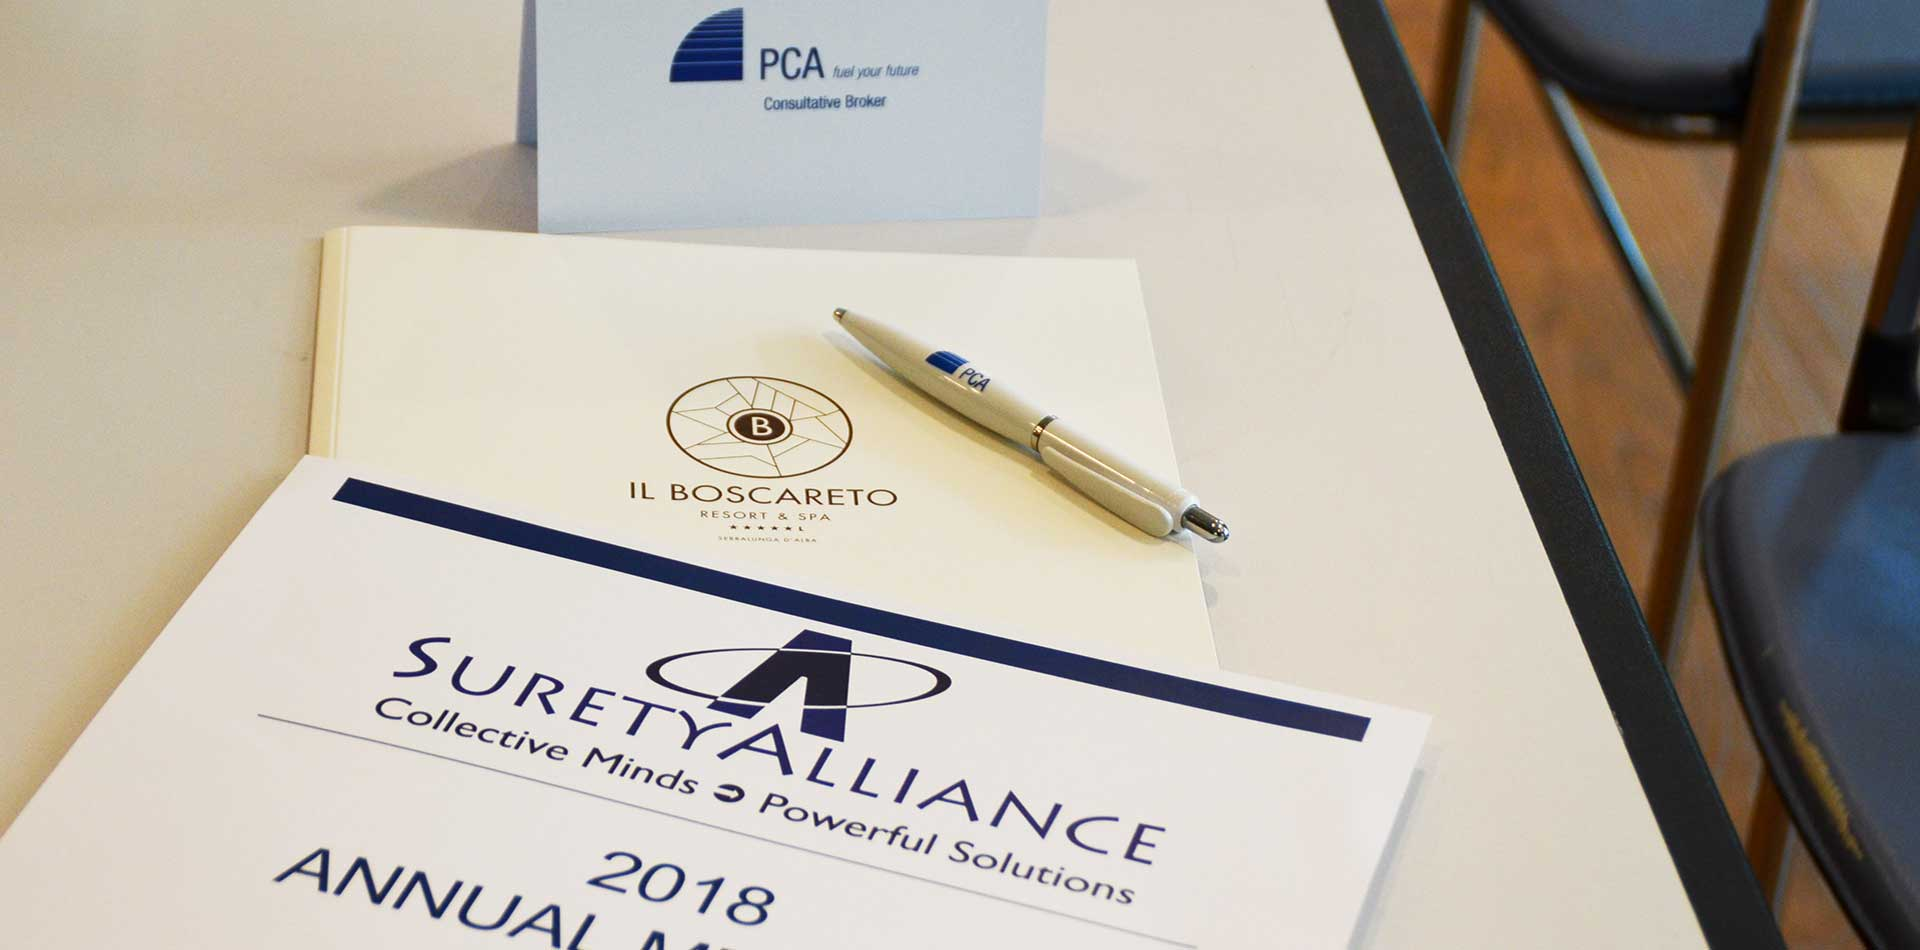 2018 Annual Meeting of the International Surety Alliance